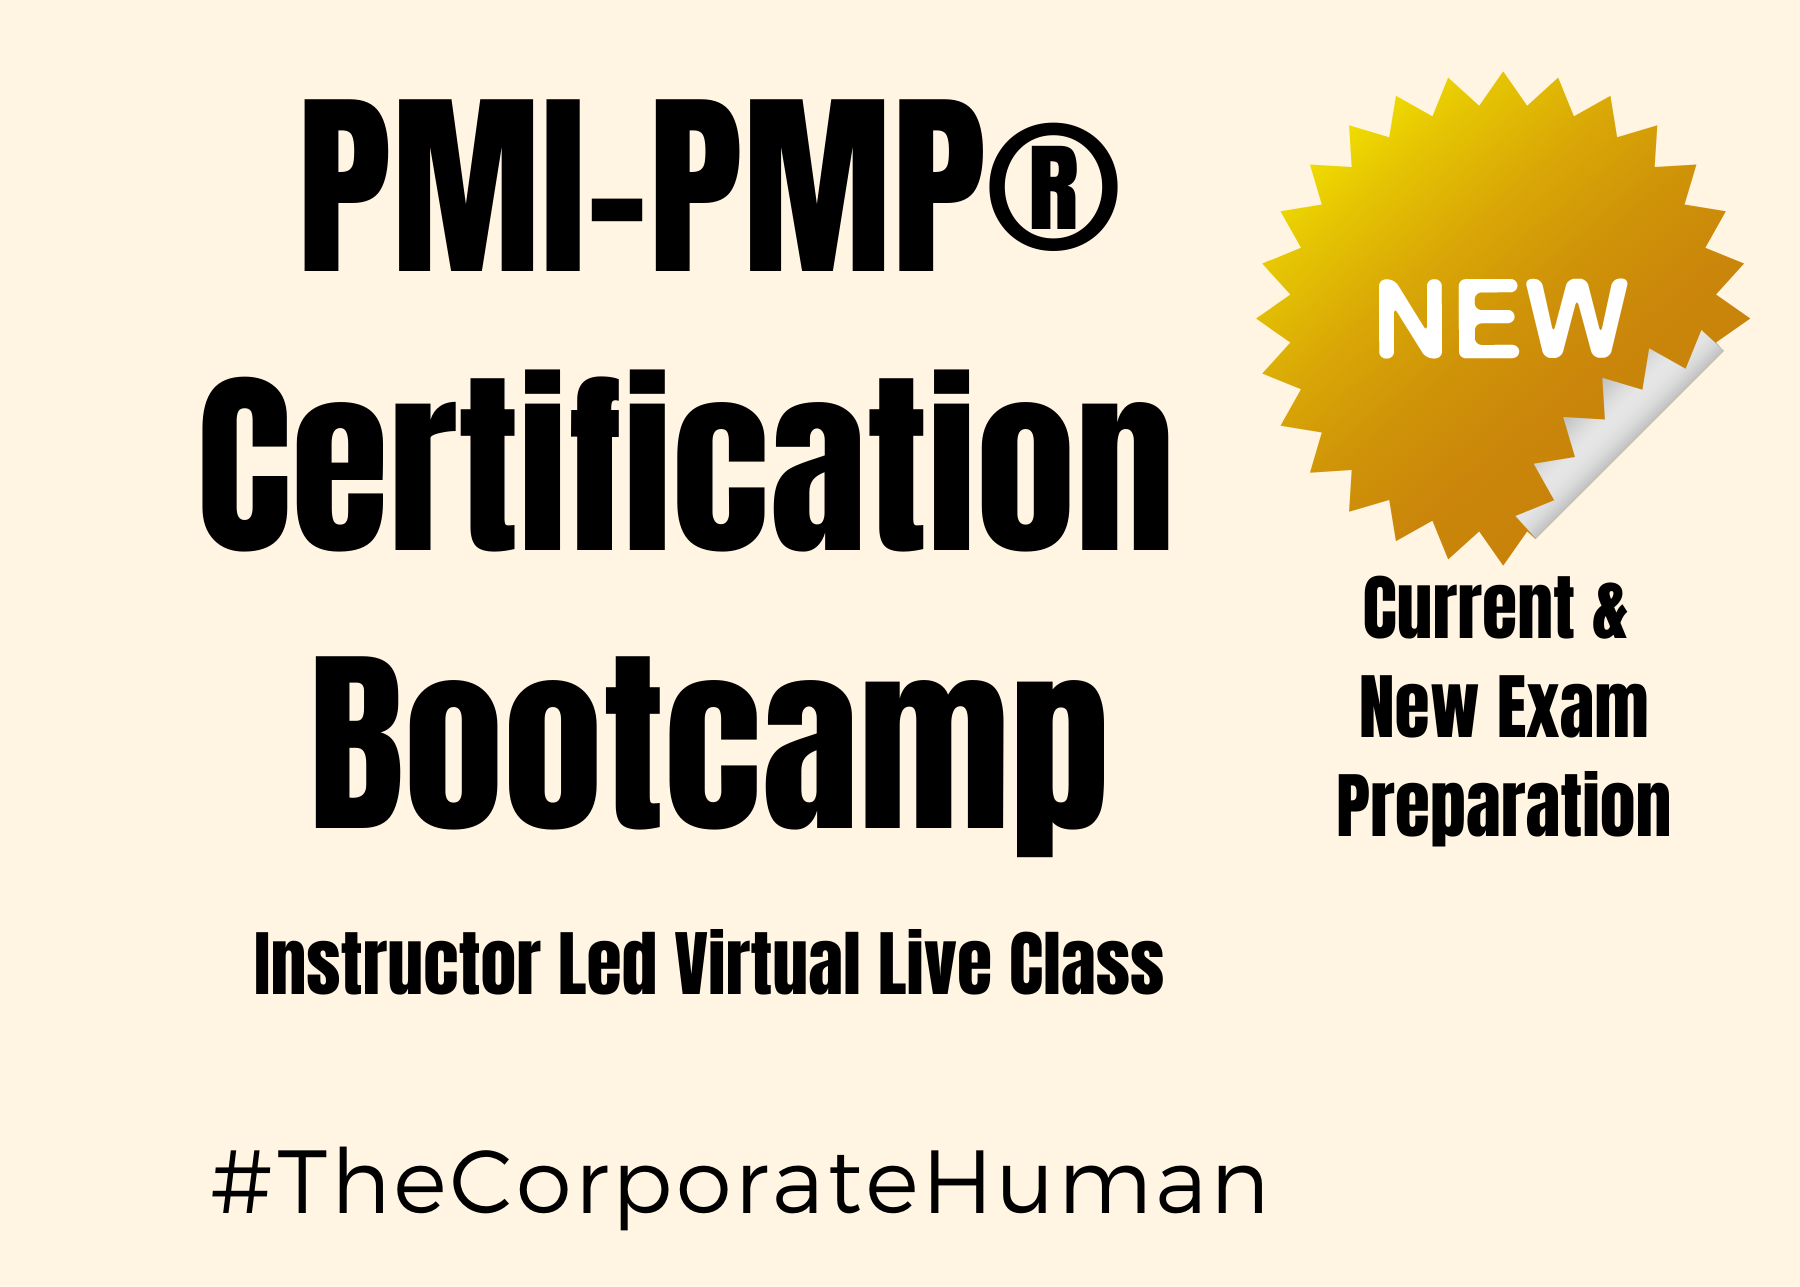 Instructor Led Virtual Live Class